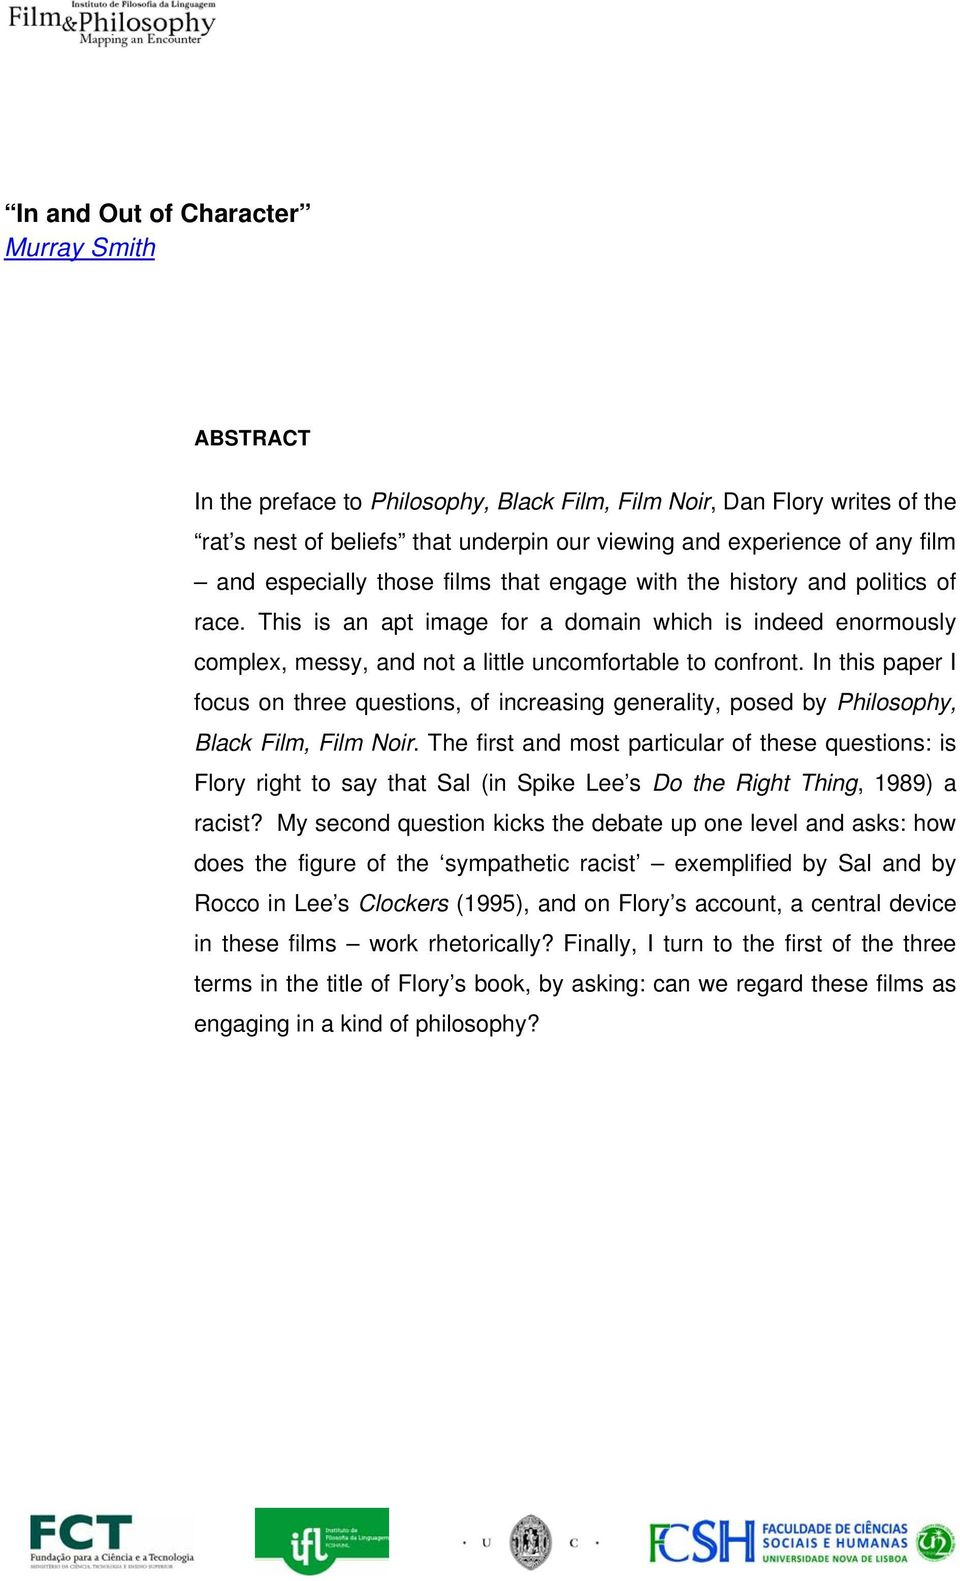 In this paper I focus on three questions, of increasing generality, posed by Philosophy, Black Film, Film Noir.